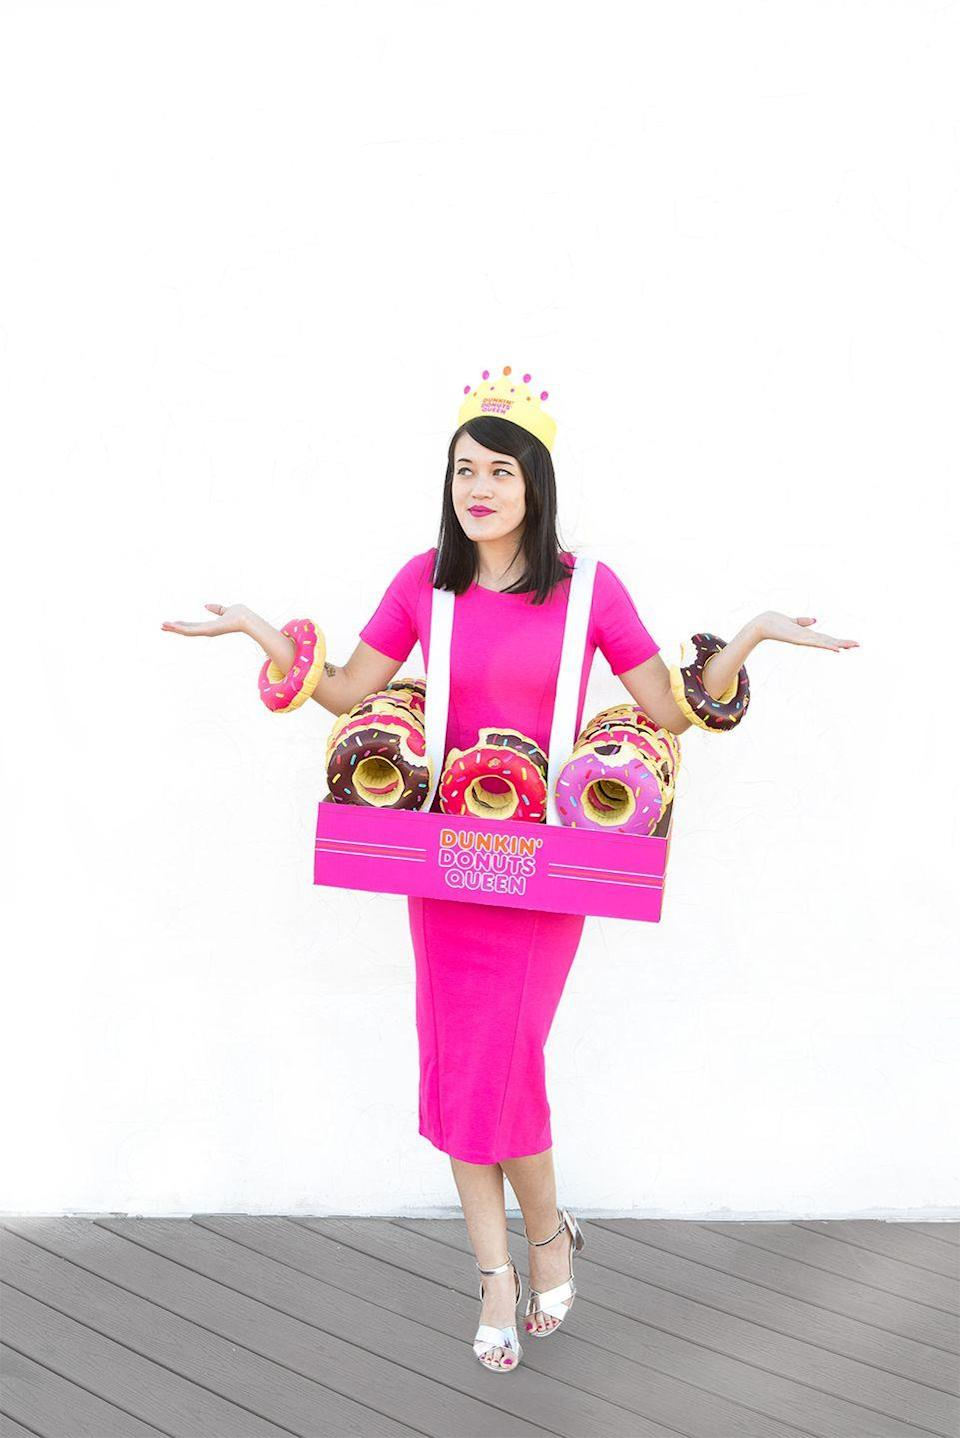 """<p>If you're Team Dunkin', here's an easy way to show your pride using bright colors and mini blow-up donuts. </p><p><a class=""""link rapid-noclick-resp"""" href=""""https://www.amazon.com/HansGo-Inflatable-Floating-Coasters-Doughnut/dp/B07CJ5QRF2/?tag=syn-yahoo-20&ascsubtag=%5Bartid%7C10055.g.2750%5Bsrc%7Cyahoo-us"""" rel=""""nofollow noopener"""" target=""""_blank"""" data-ylk=""""slk:SHOP INFLATABLE DONUTS"""">SHOP INFLATABLE DONUTS</a></p><p><em><a href=""""http://www.awwsam.com/2016/10/diy-donut-queen-costume.html"""" rel=""""nofollow noopener"""" target=""""_blank"""" data-ylk=""""slk:See more on Aww Sam »"""" class=""""link rapid-noclick-resp"""">See more on Aww Sam »</a></em></p>"""